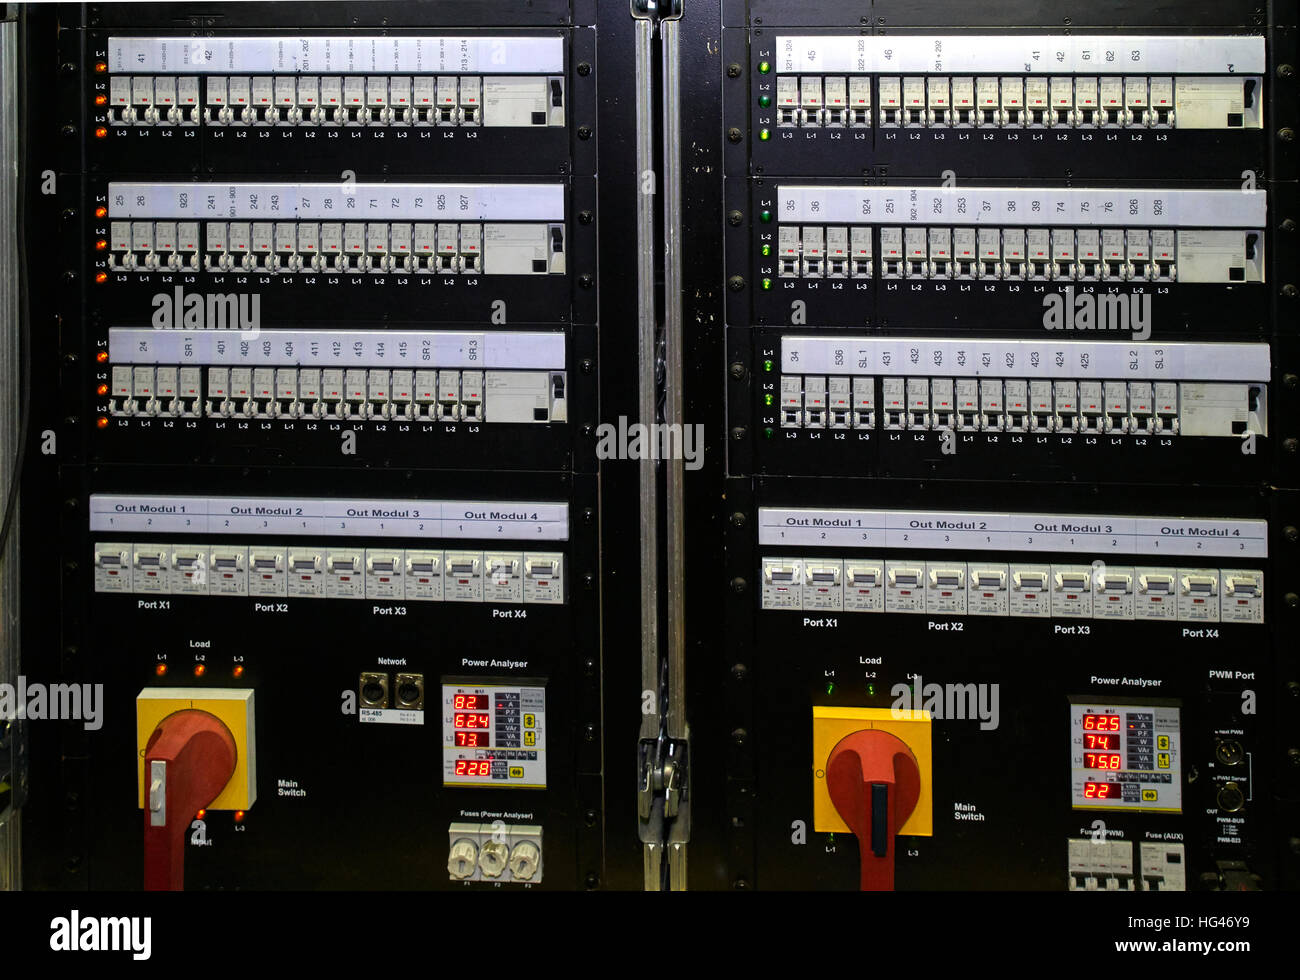 fuse box switch and lights stock photo royalty image stock photo fuse box switch and lights